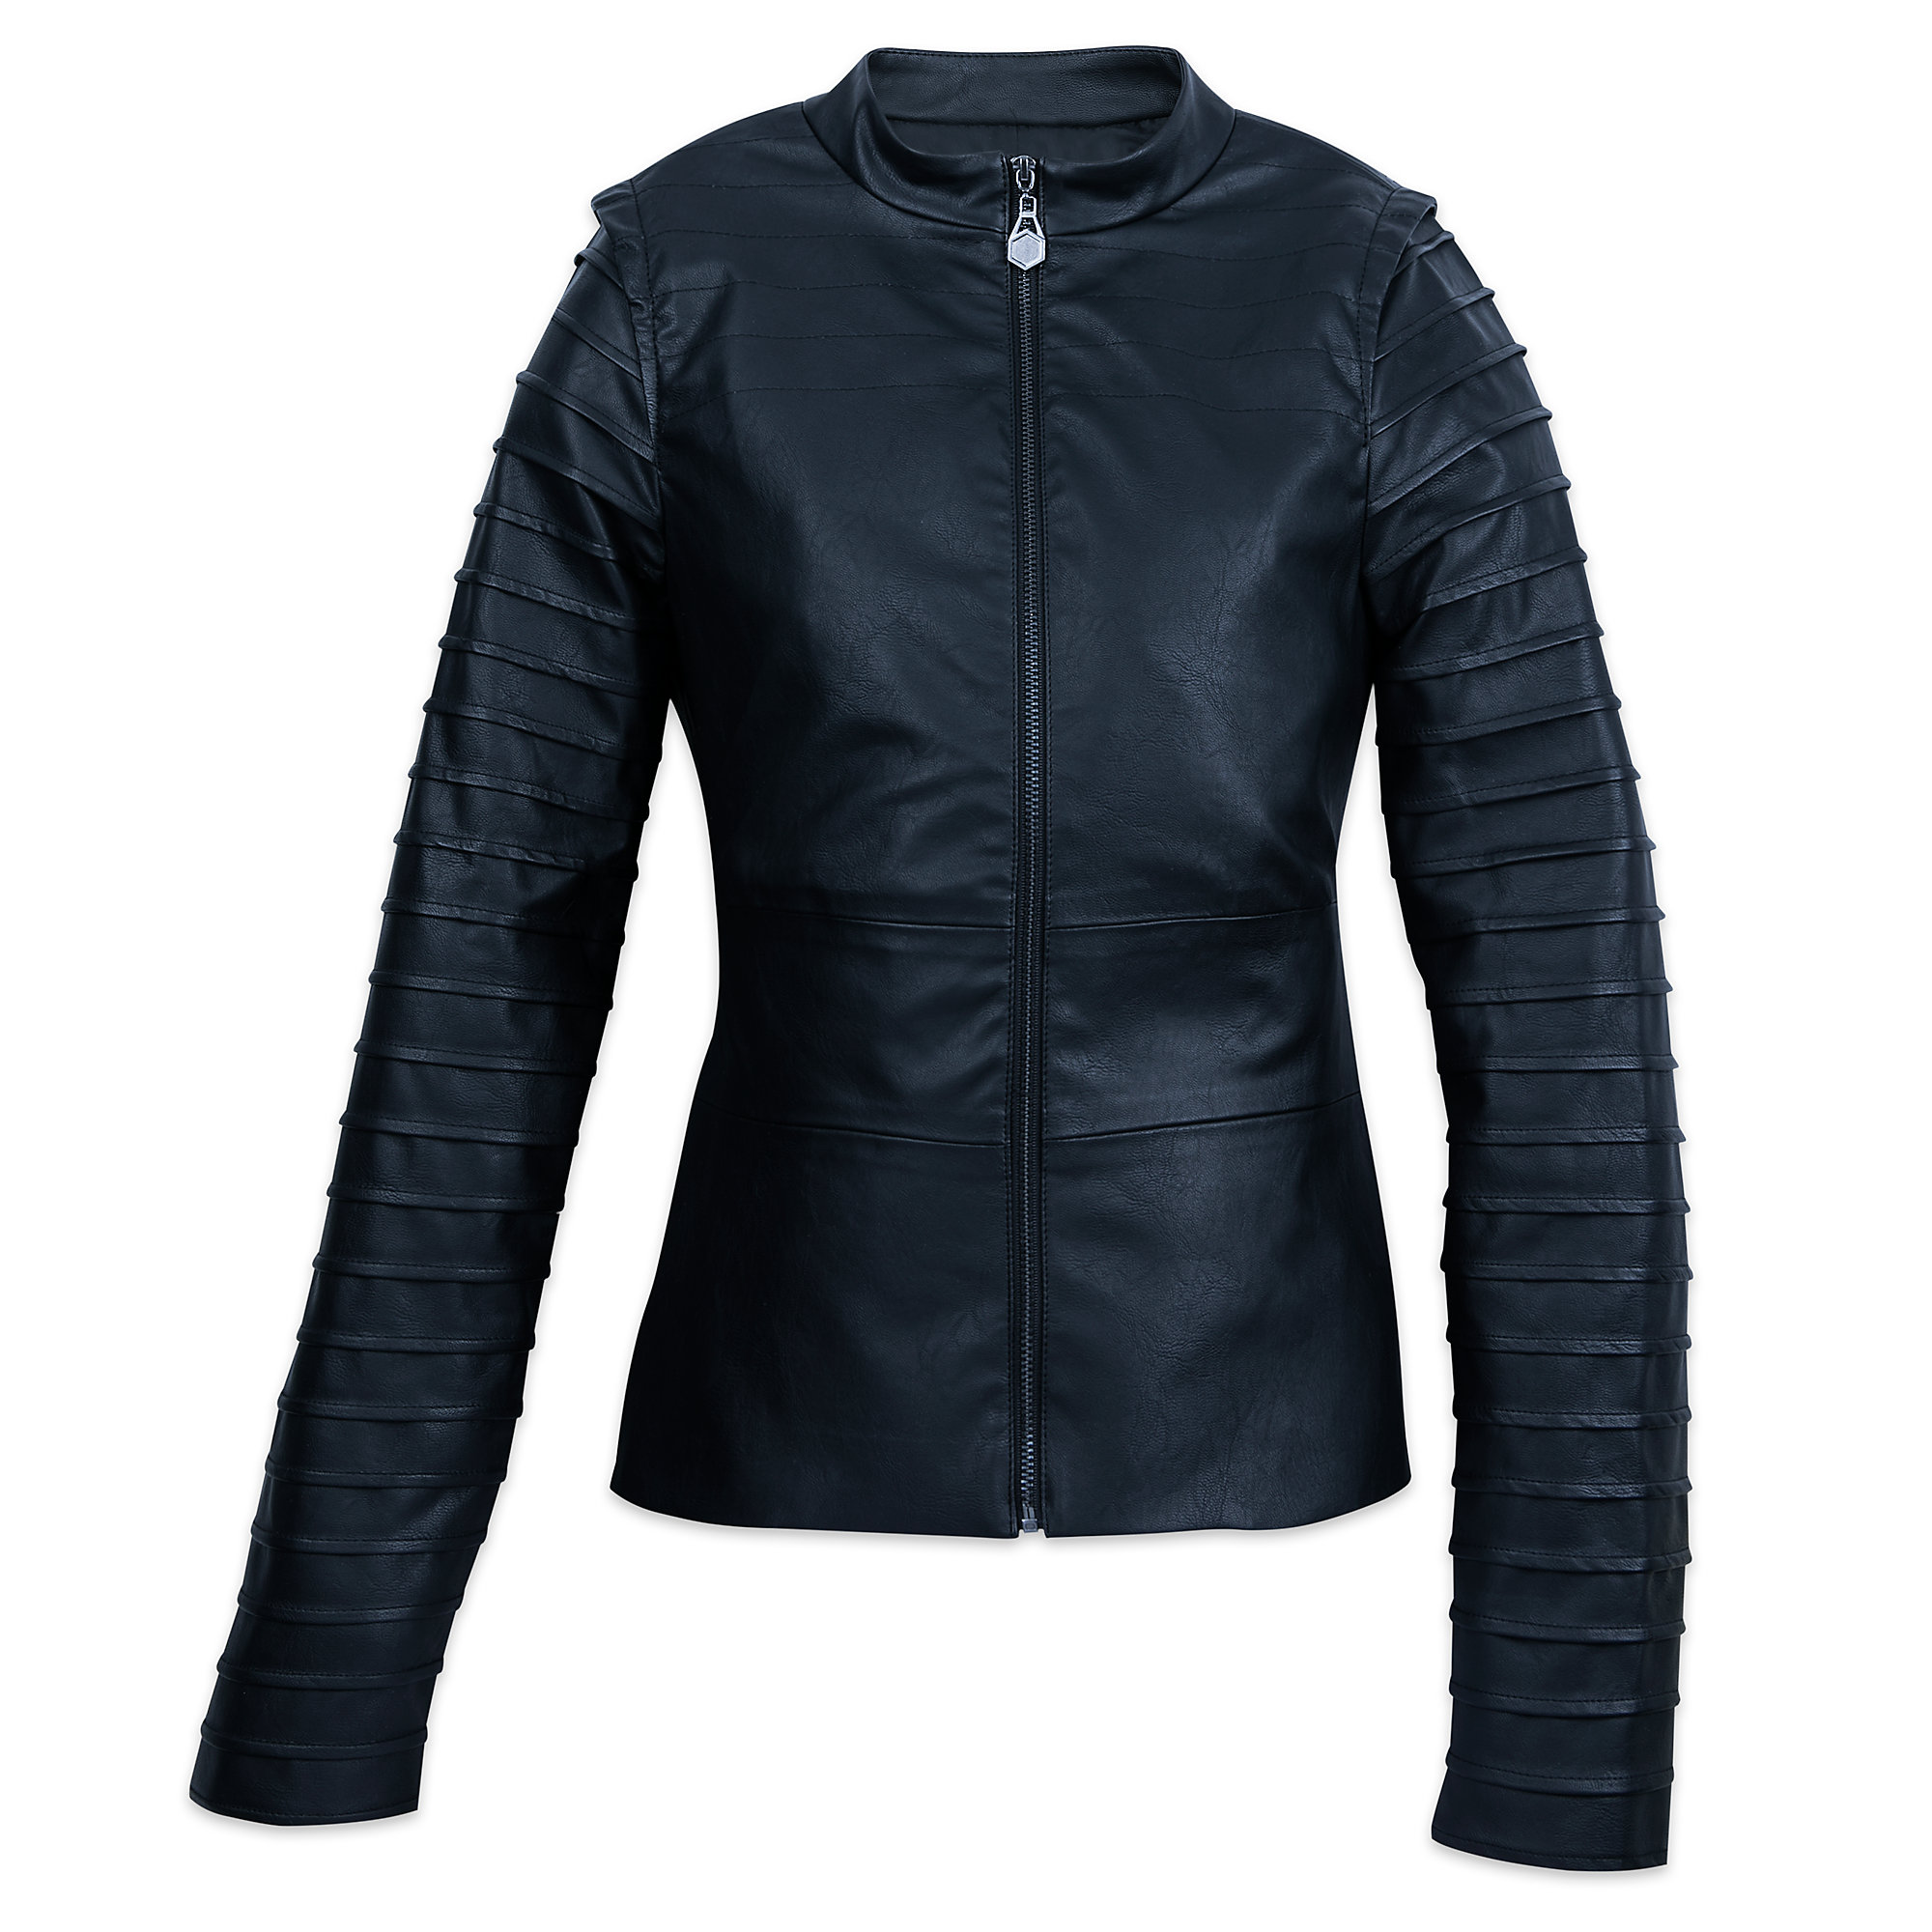 Kylo Ren Motocross Jacket for Women by Her Universe